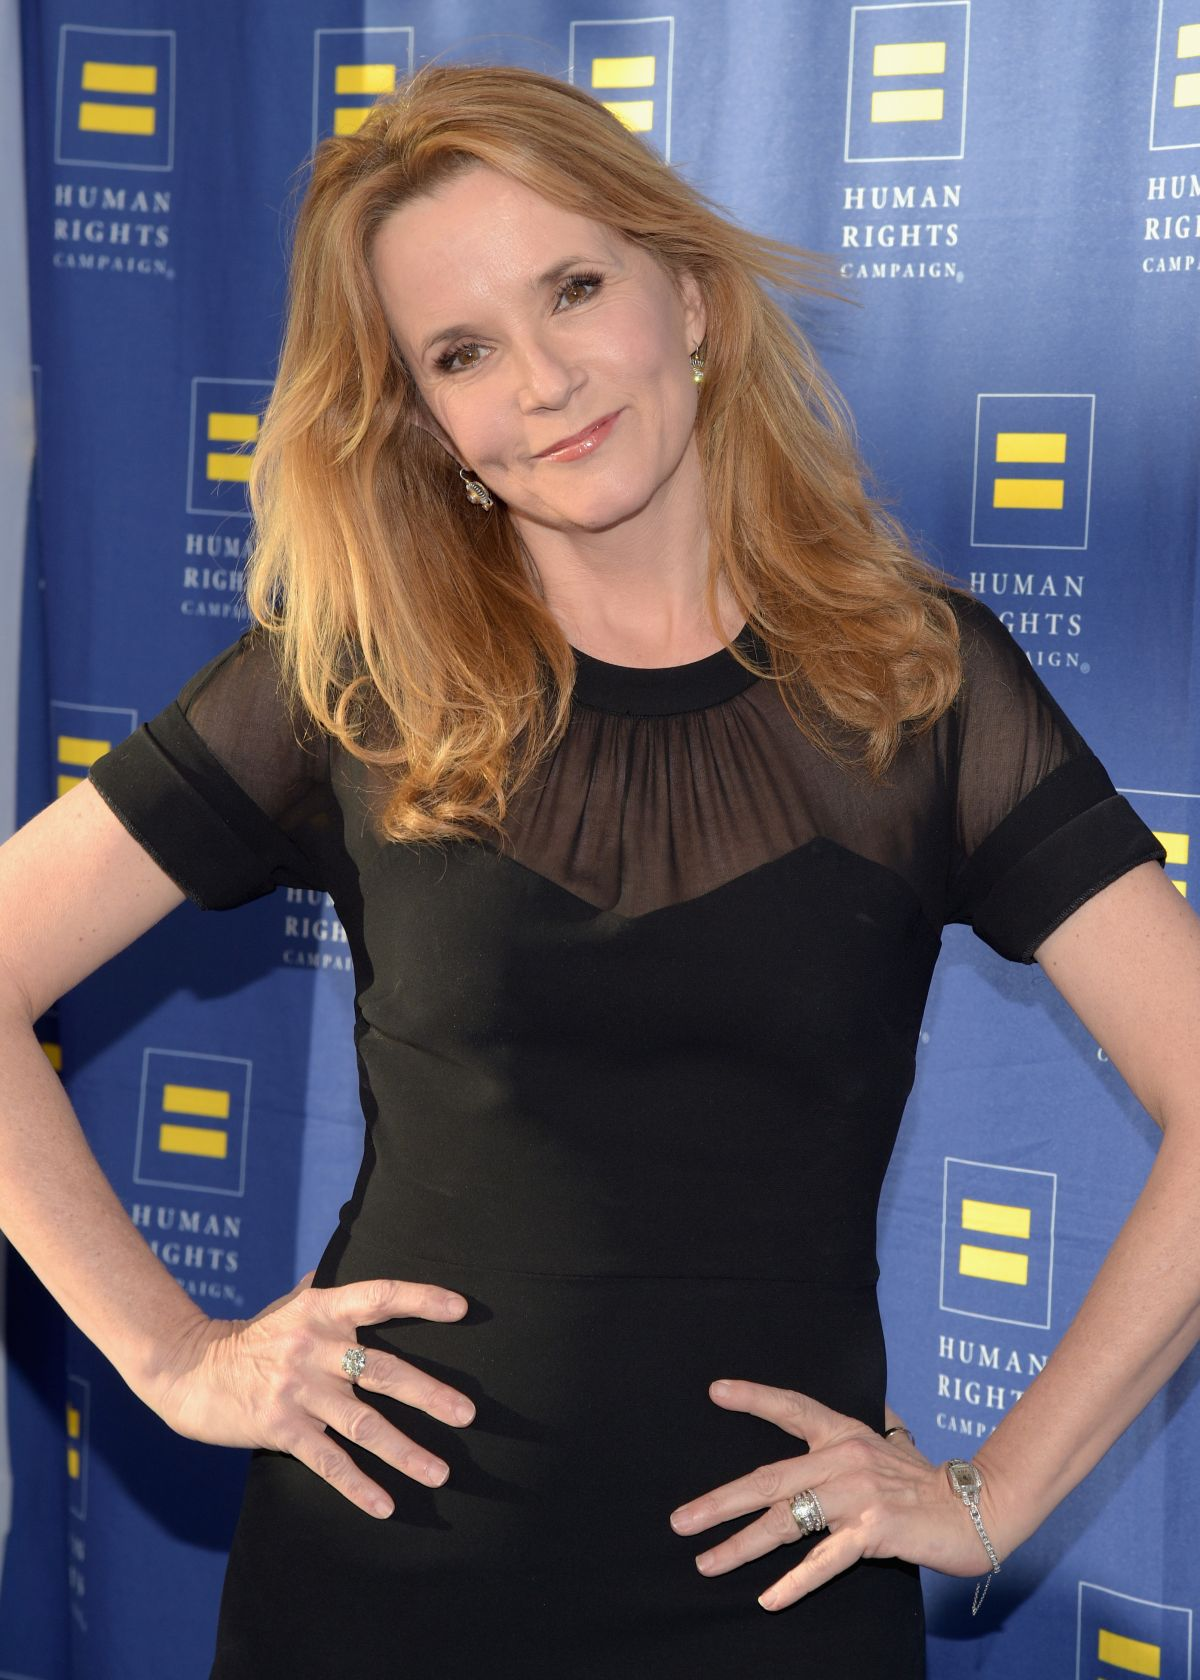 Lea Thompson earned a  million dollar salary, leaving the net worth at 14 million in 2017